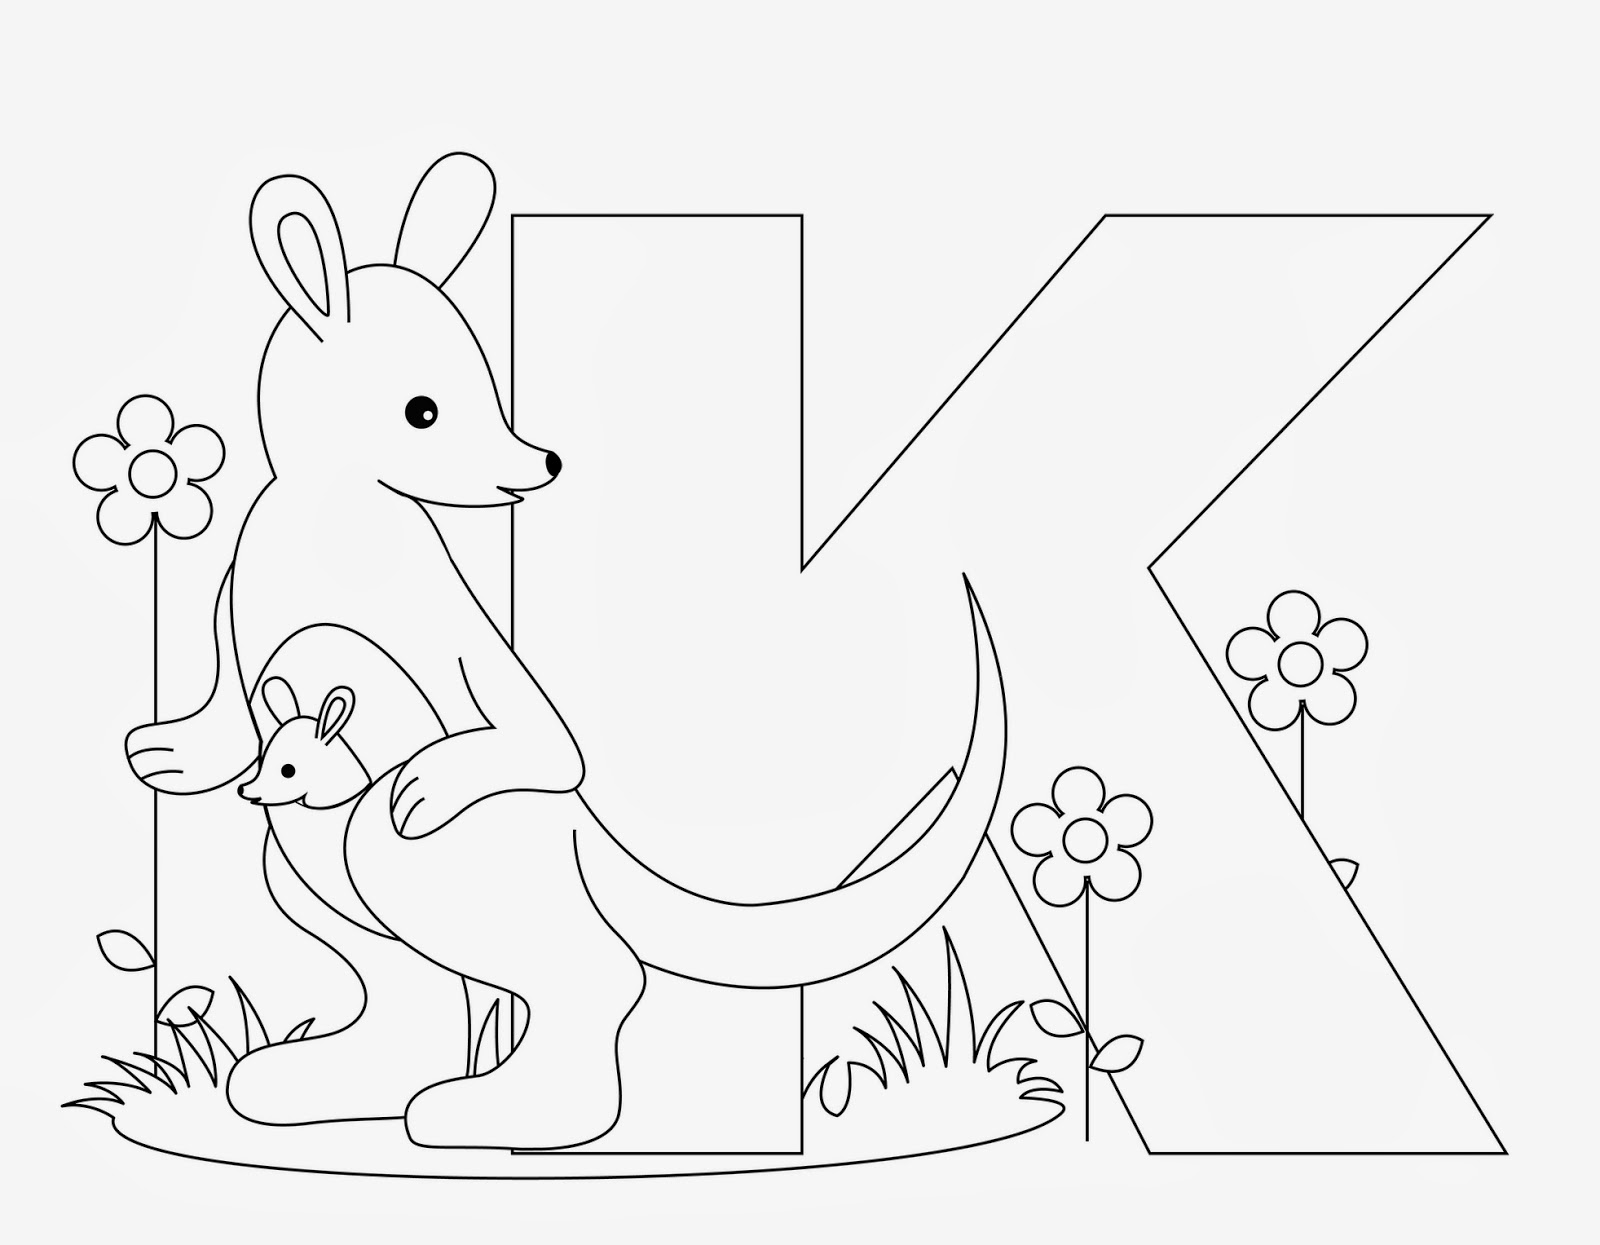 Letter Coloring Pages Of Alphabet Words For Kids Printable Alphabet_a  Remarkable – Dialogueeurope | 1245x1600